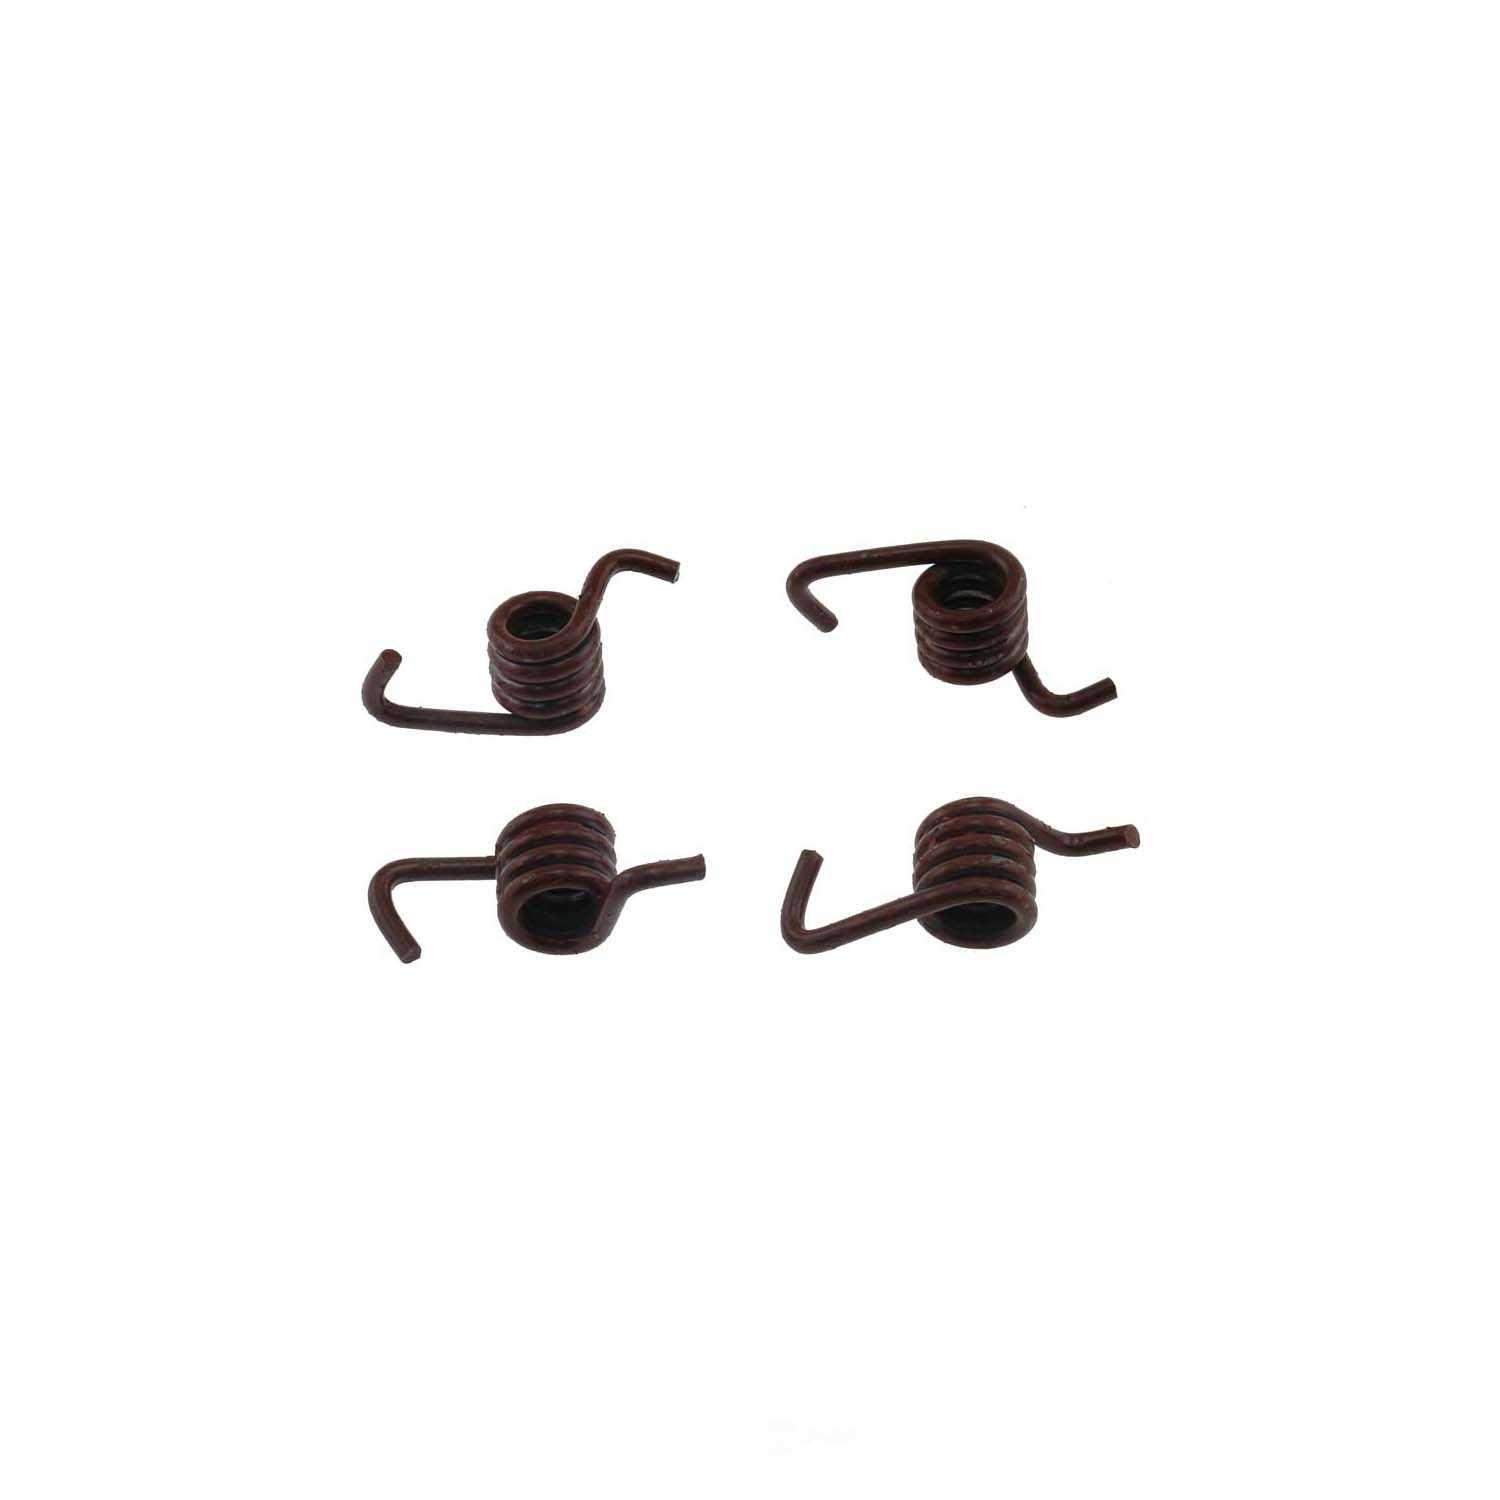 CARLSON QUALITY BRAKE PARTS - Brake Hold Down Spring - CRL H1164-2